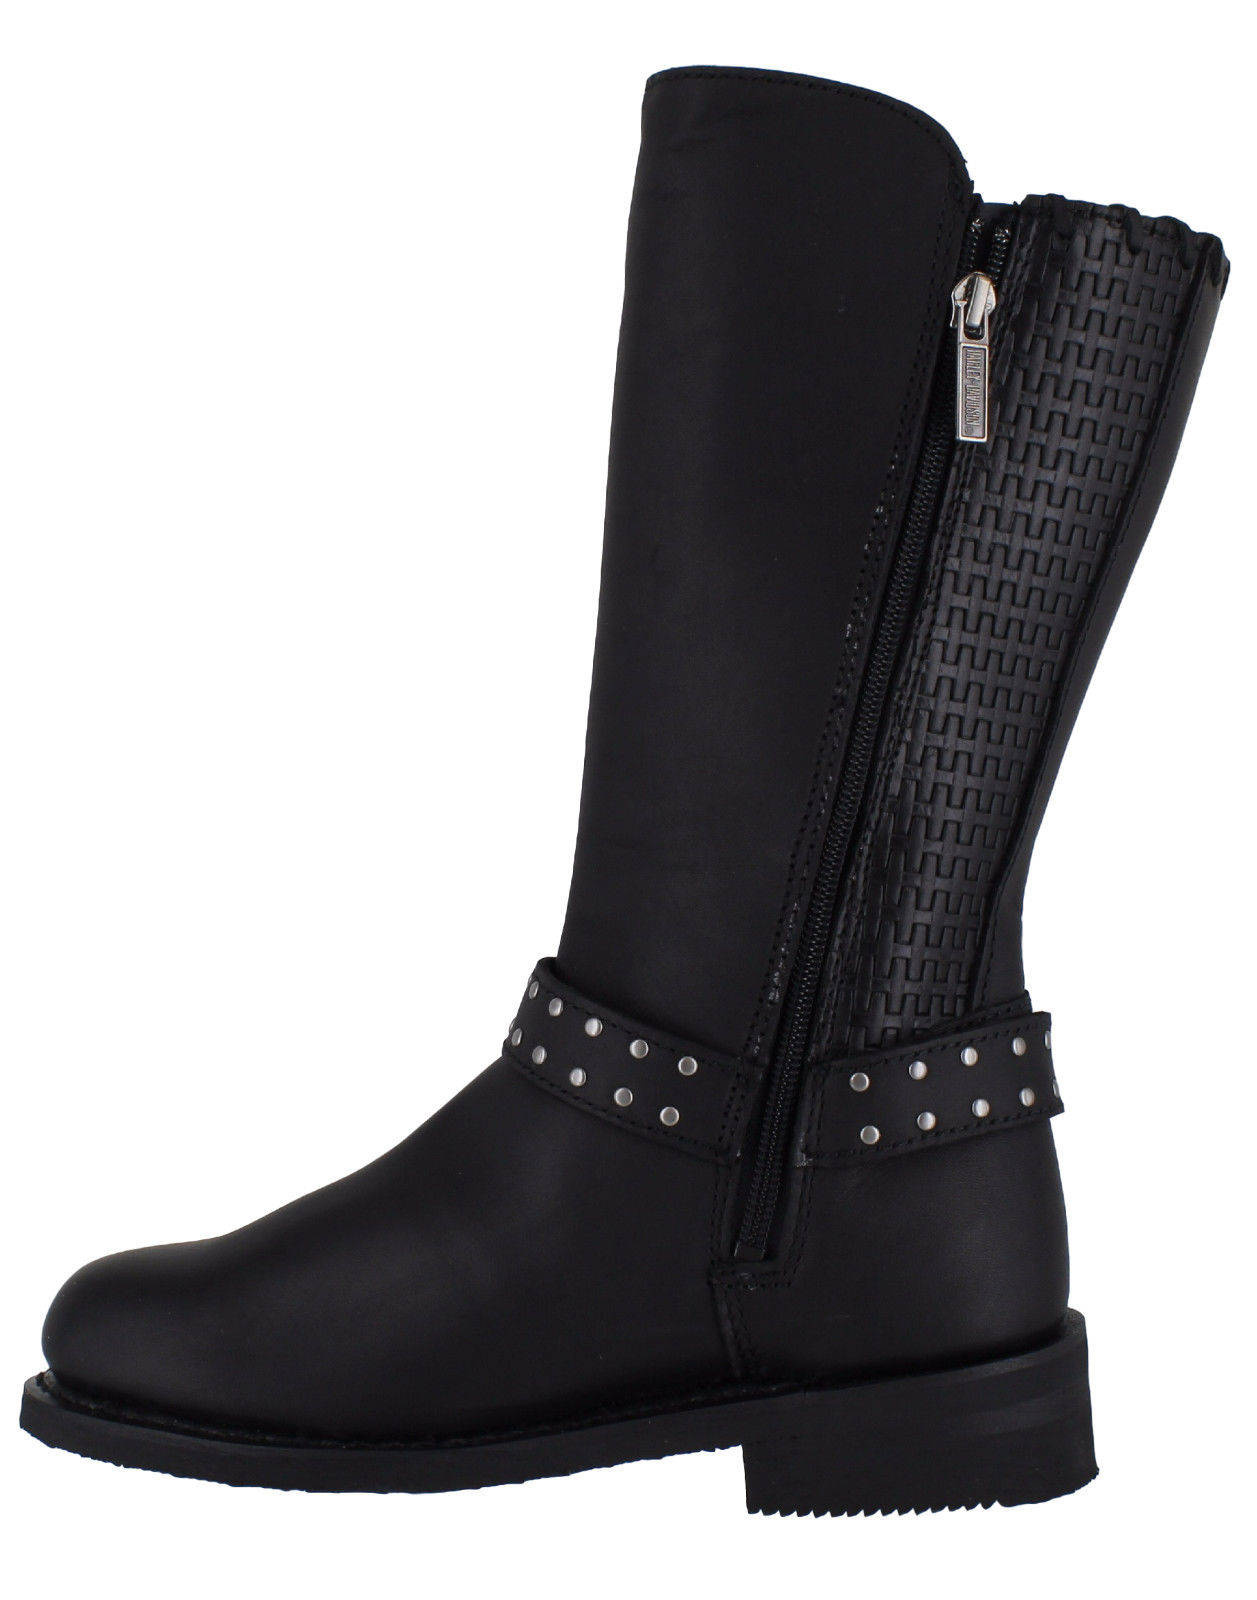 Excellent Harley-Davidson Womenu0026#39;s Sapphire Work Boot Black 8.5 M US | Pretty In Boots | Fabulous Womenu0026#39;s ...